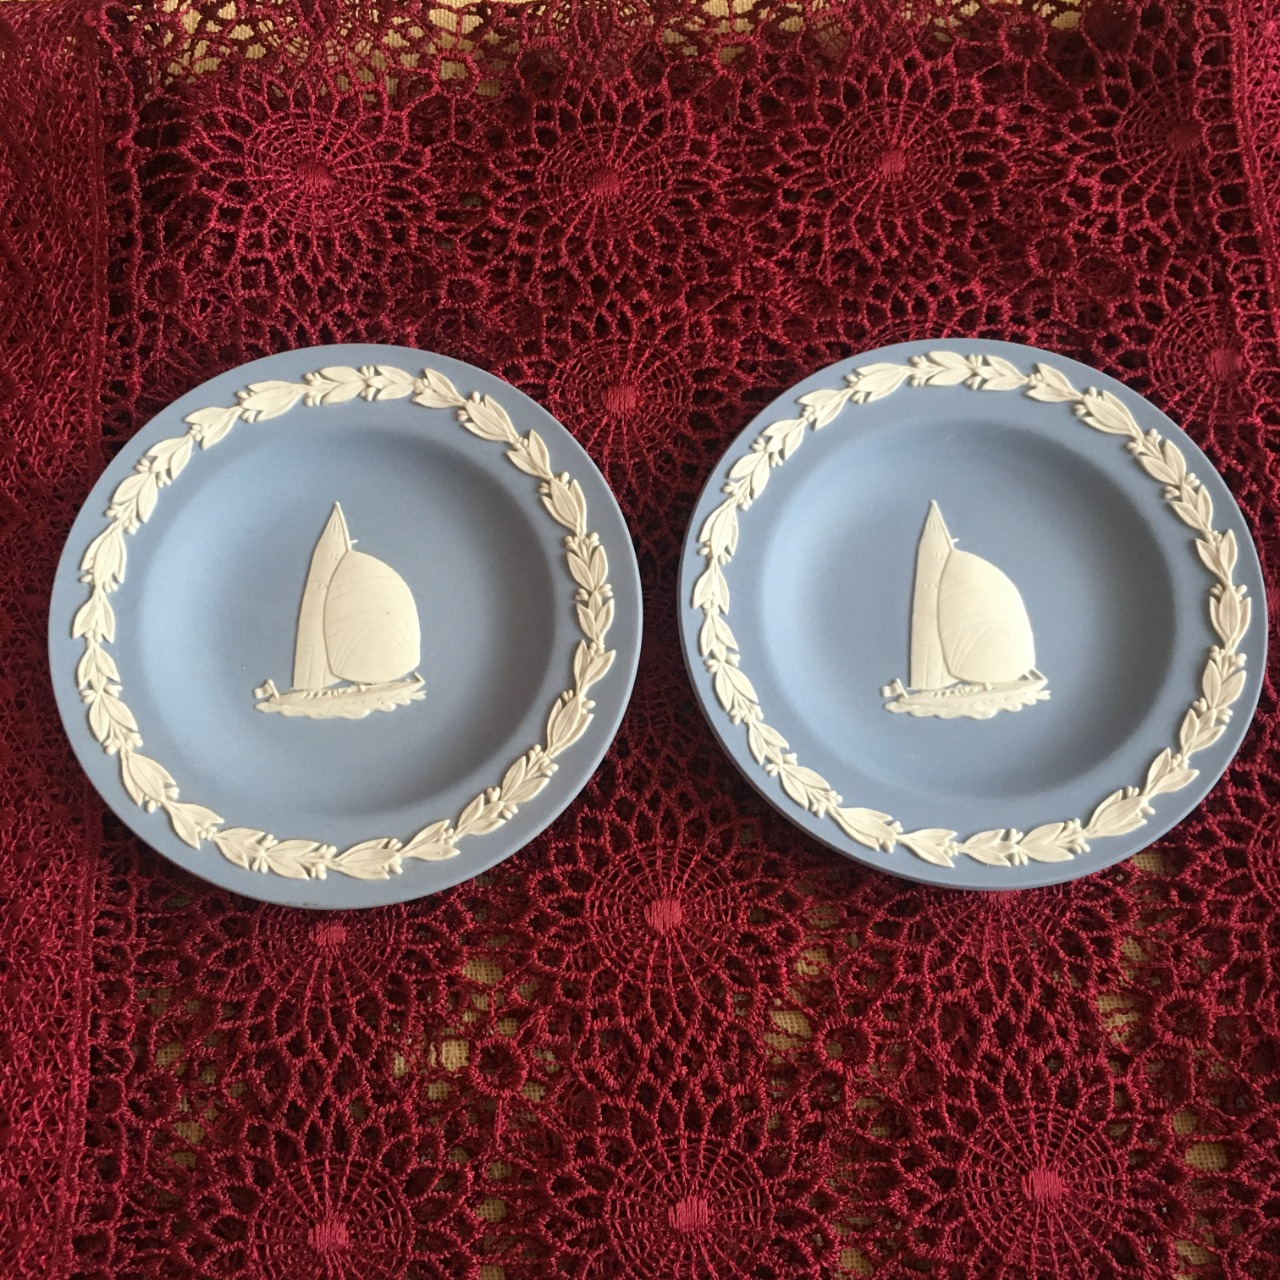 Wedgwood America's Cup Challenge Round Blue 2 x Trays 14094Z Made in England